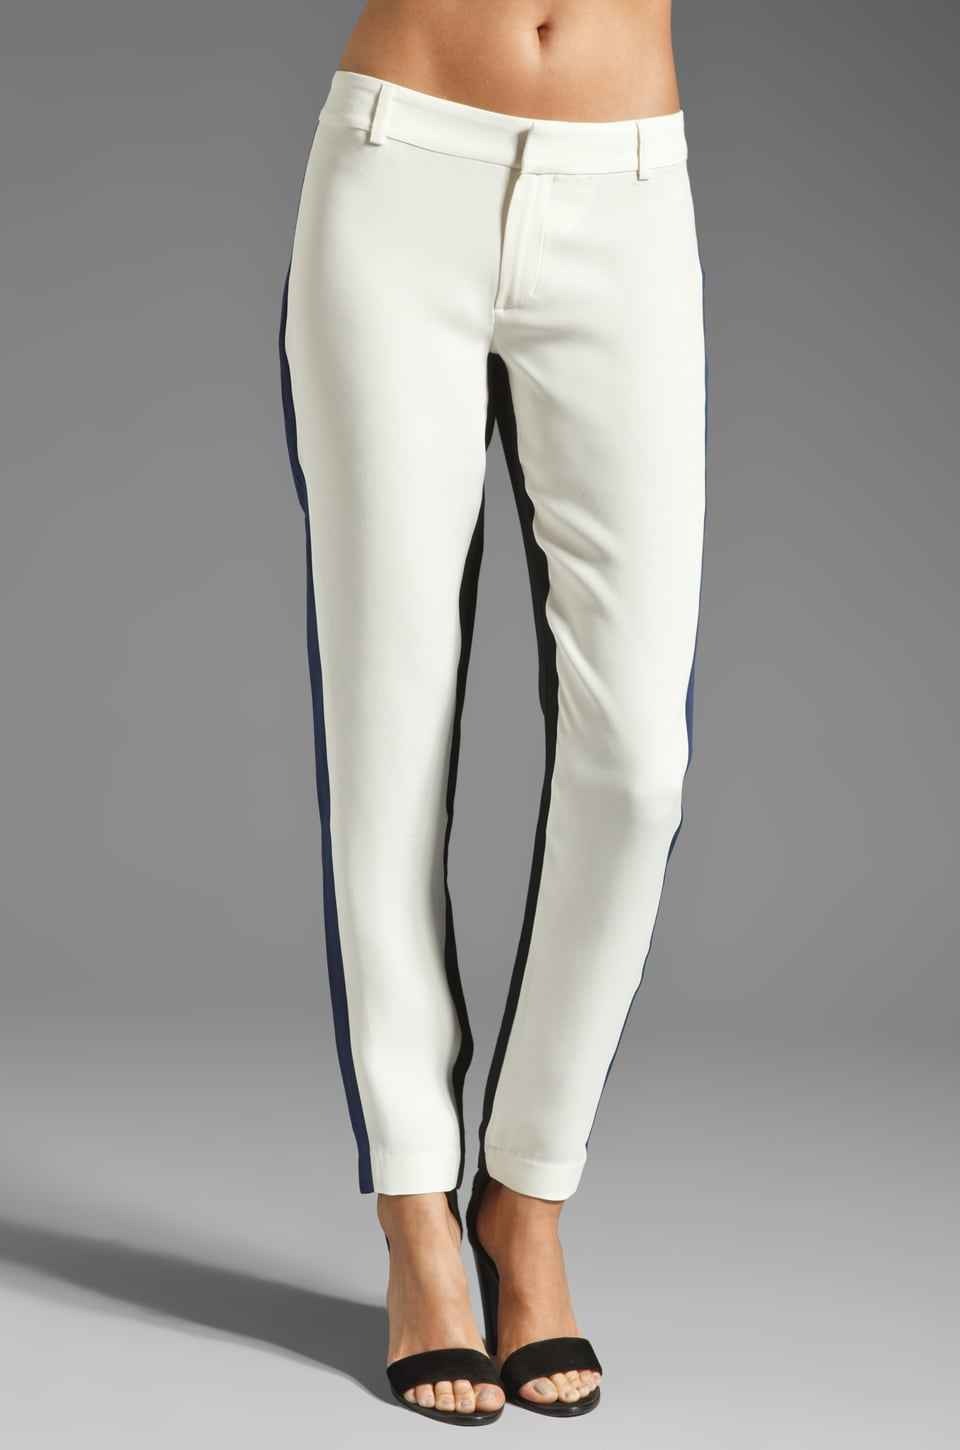 Parker Crepe Georgette Combo Pant in Ivory/Combo